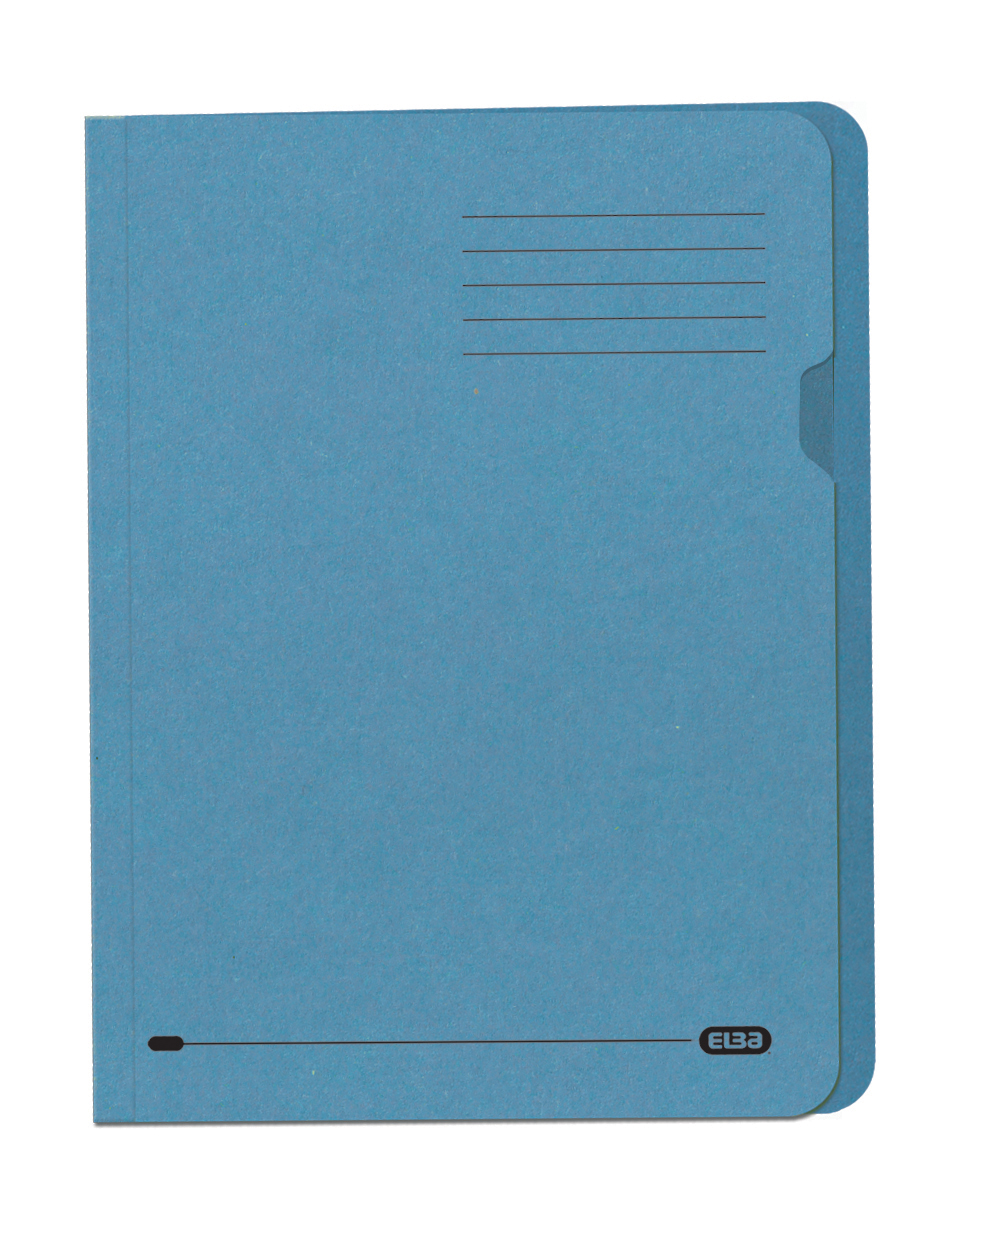 Elba A4 Square Cut Folder Recycled Lightweight 180gsm Manilla Blue Ref 100090203 [Pack 100]